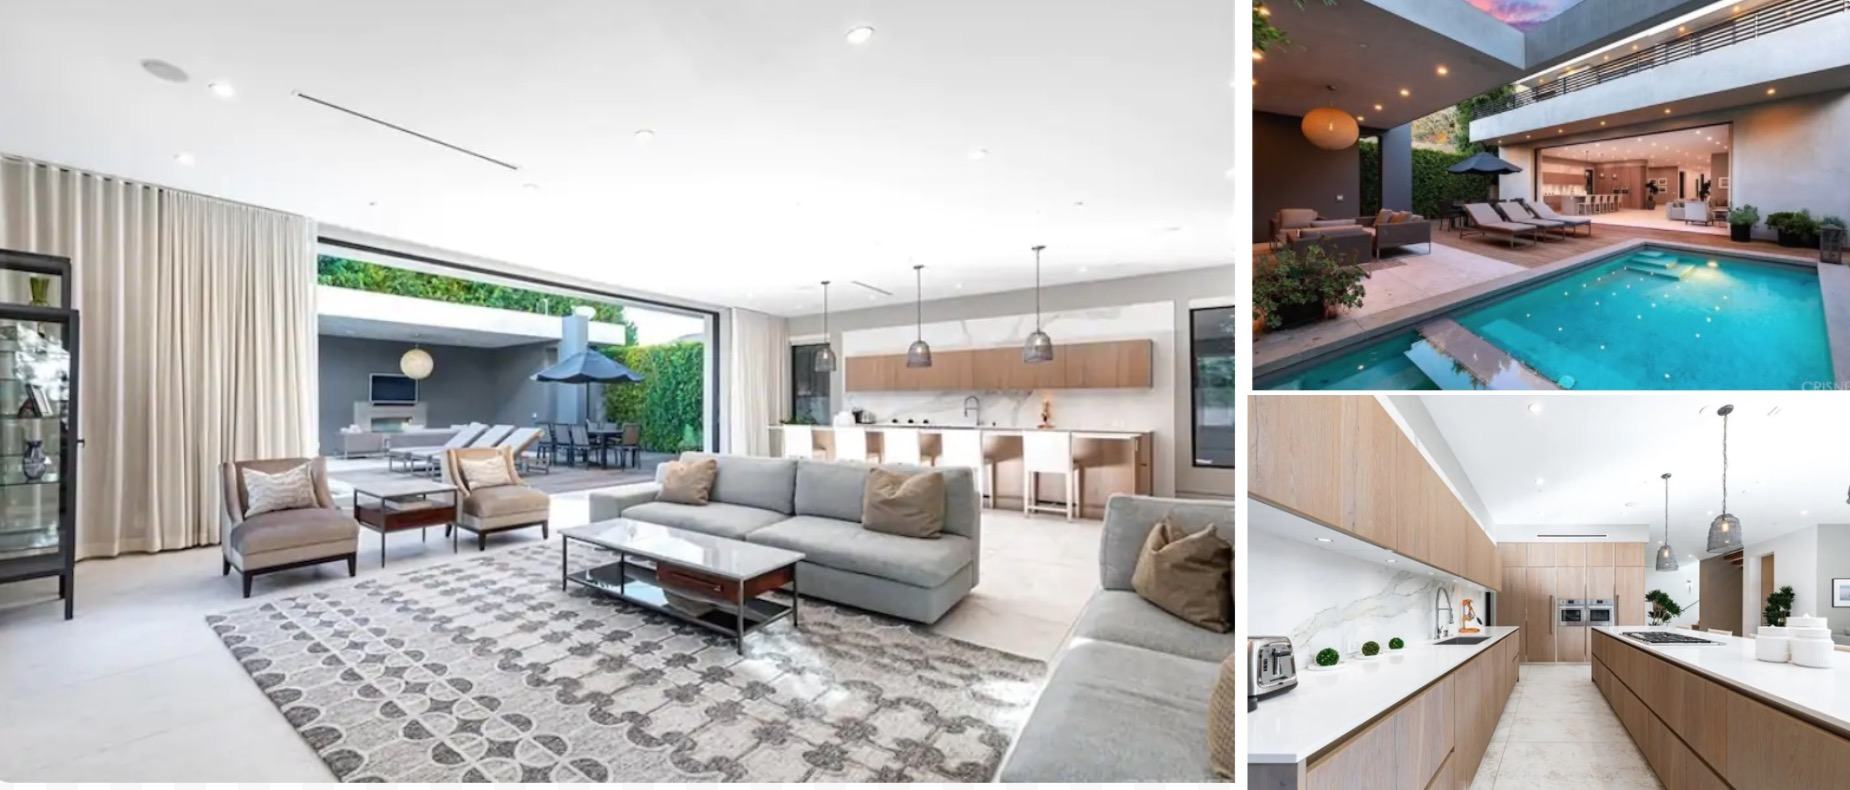 Incredible Modern Mansion with Private Pool, Heart of Los Angeles